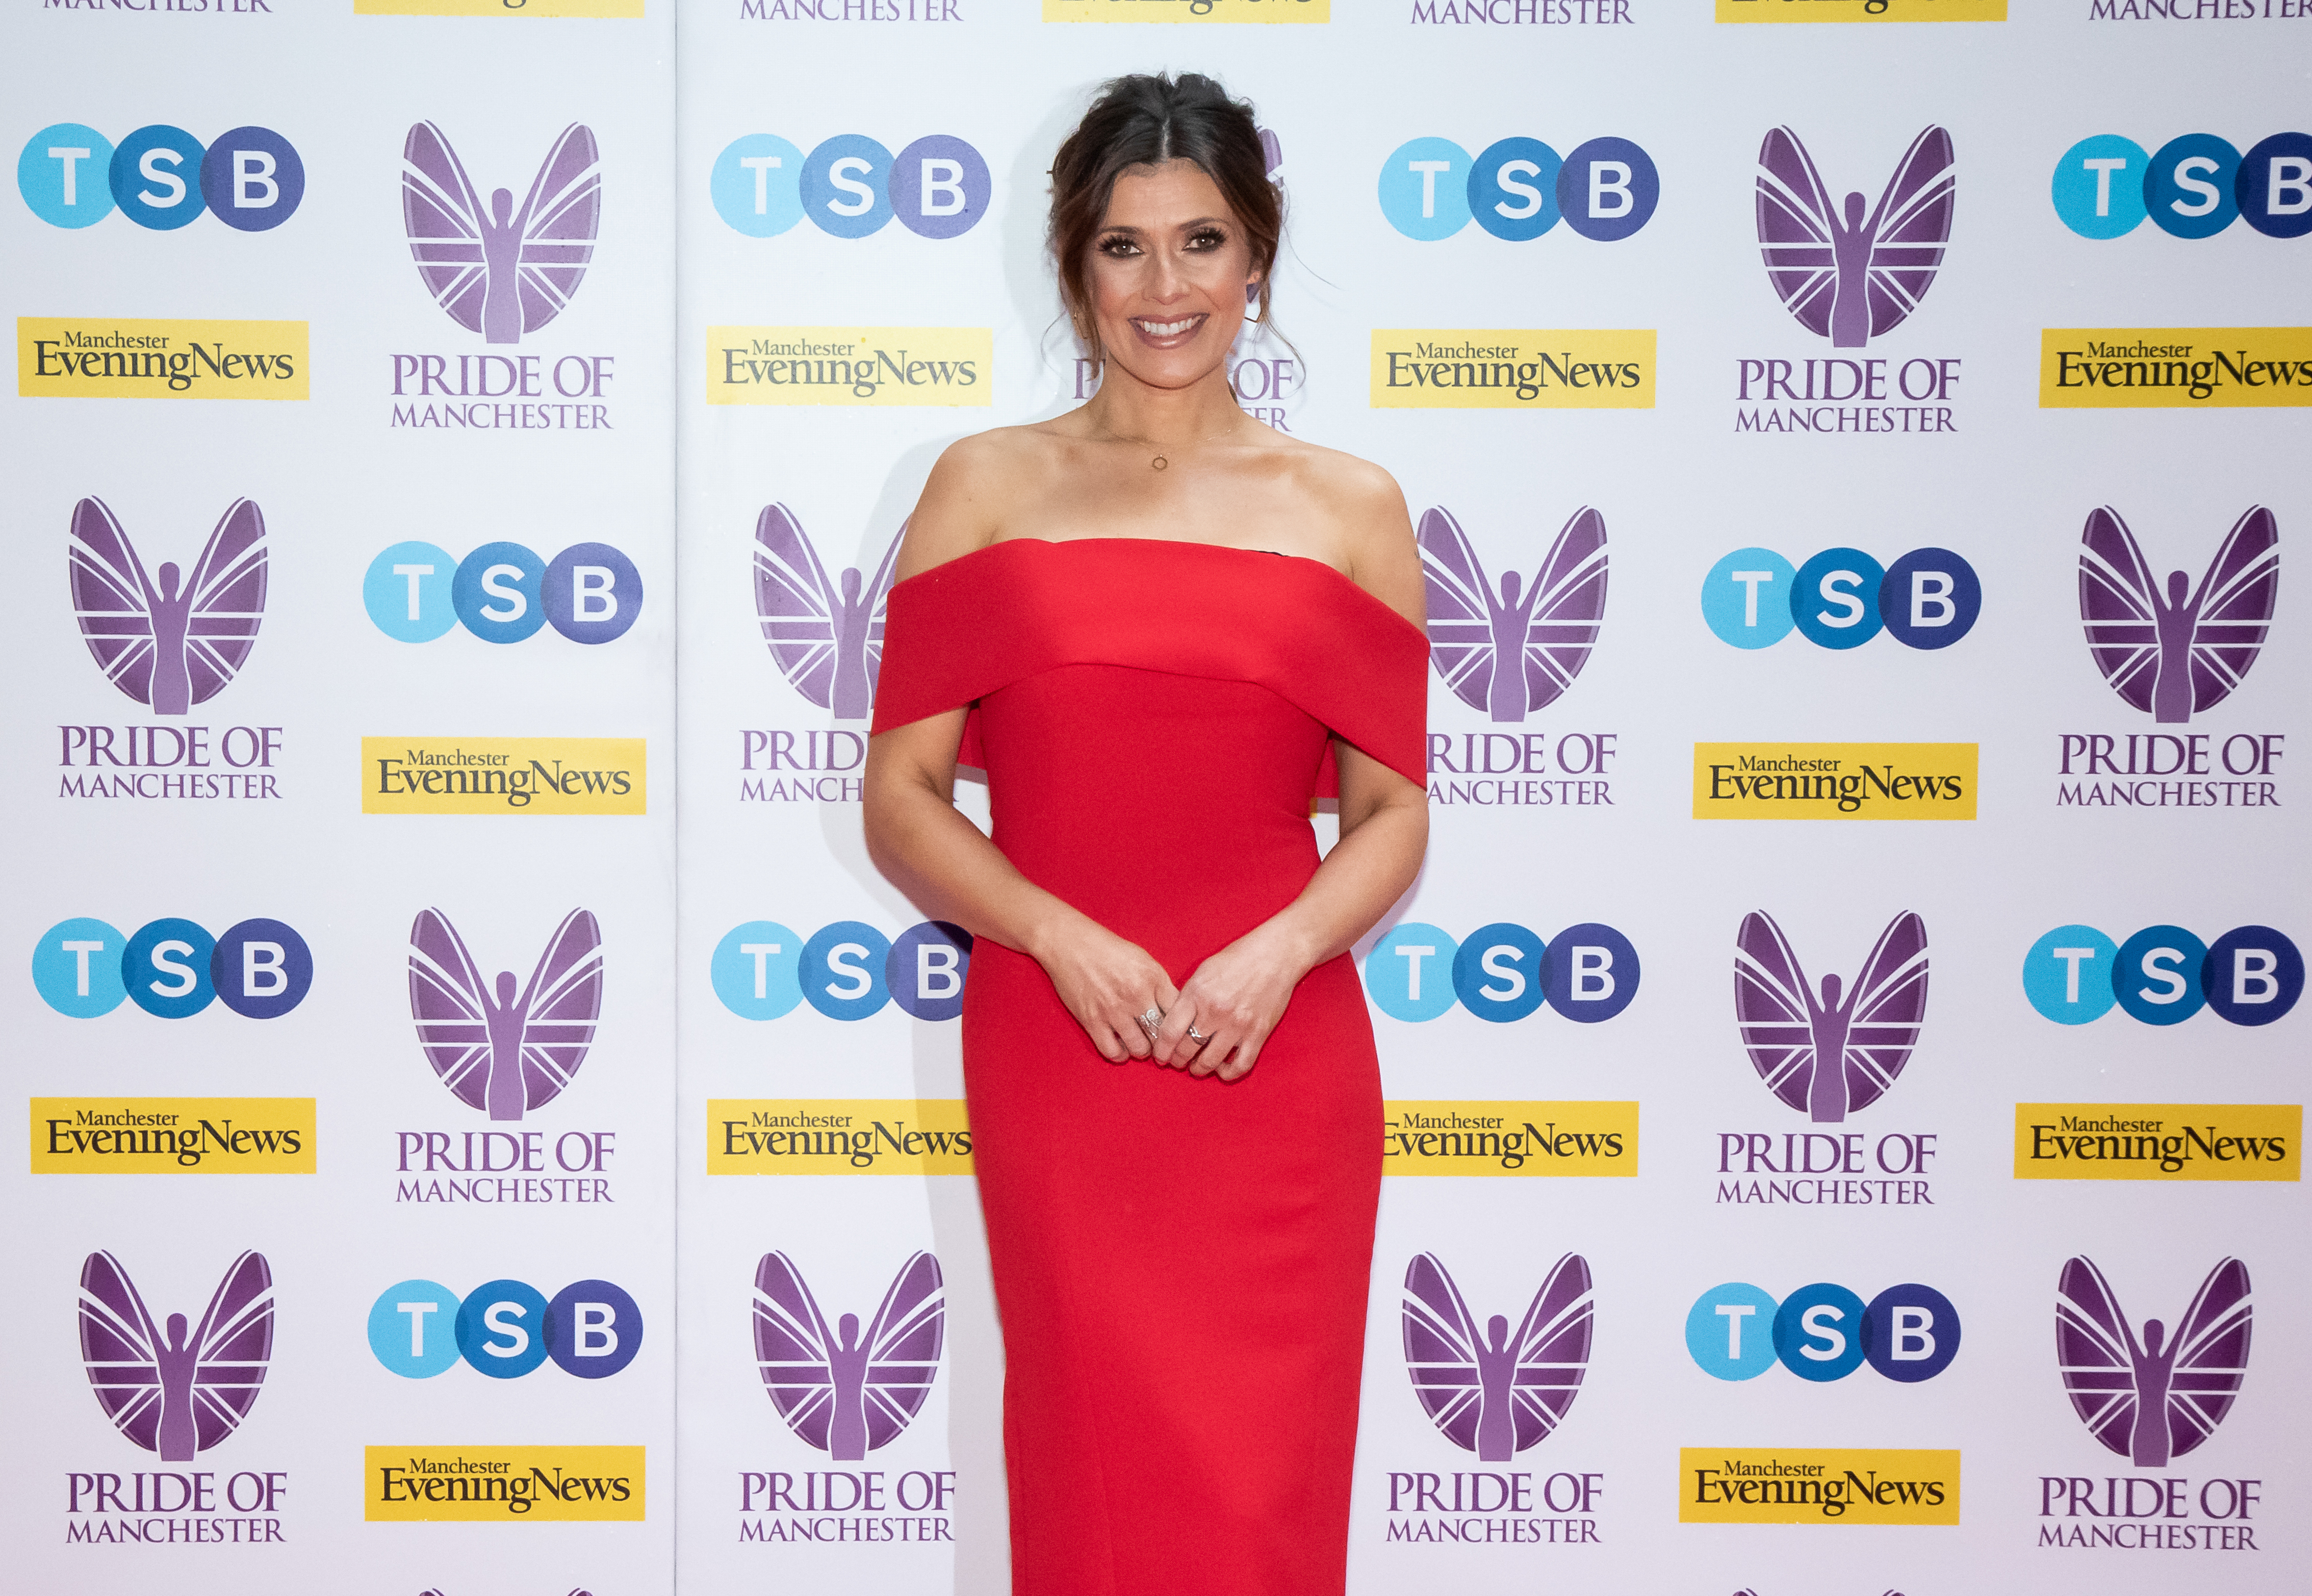 MANCHESTER, ENGLAND - MAY 08: Kym Marsh attends the Pride of Manchester Awards 2019 at Waterhouse Way on May 08, 2019 in Manchester, England. (Photo by Carla Speight/Getty Images)